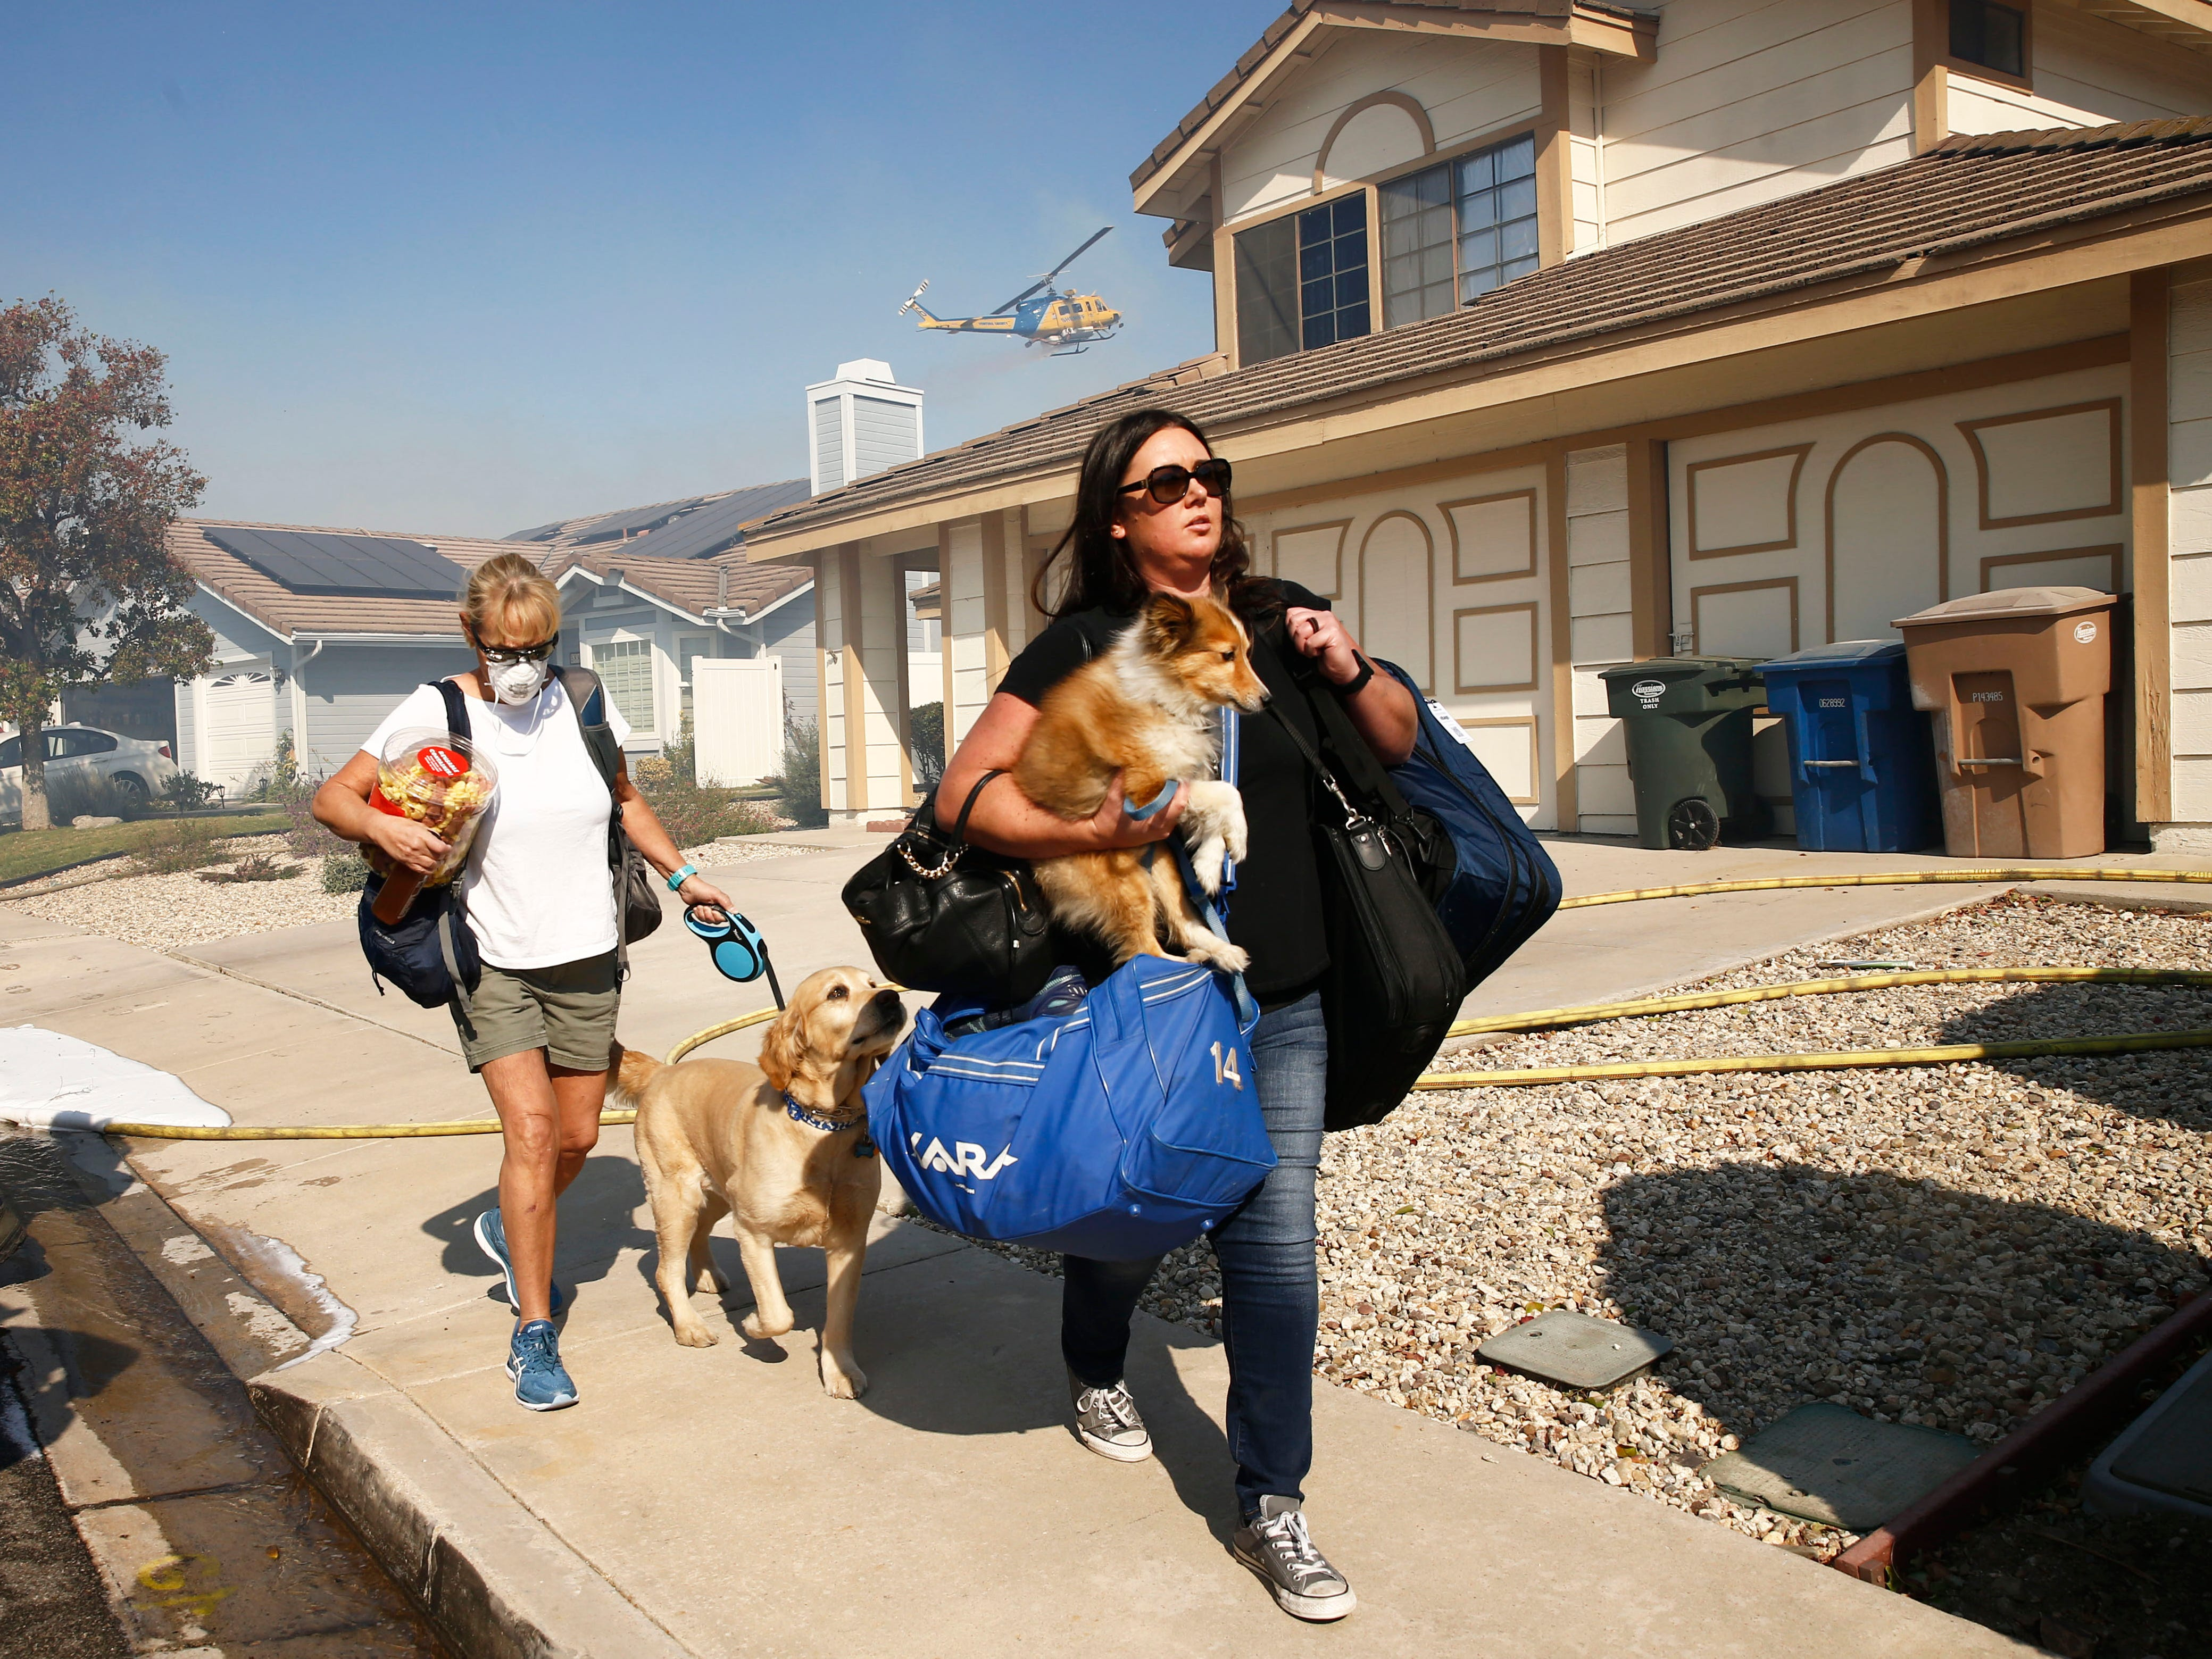 Residents evacuate with their pets as the Hill Fire burns on Nov. 12, 2018, in Thousand Oaks, Calif.